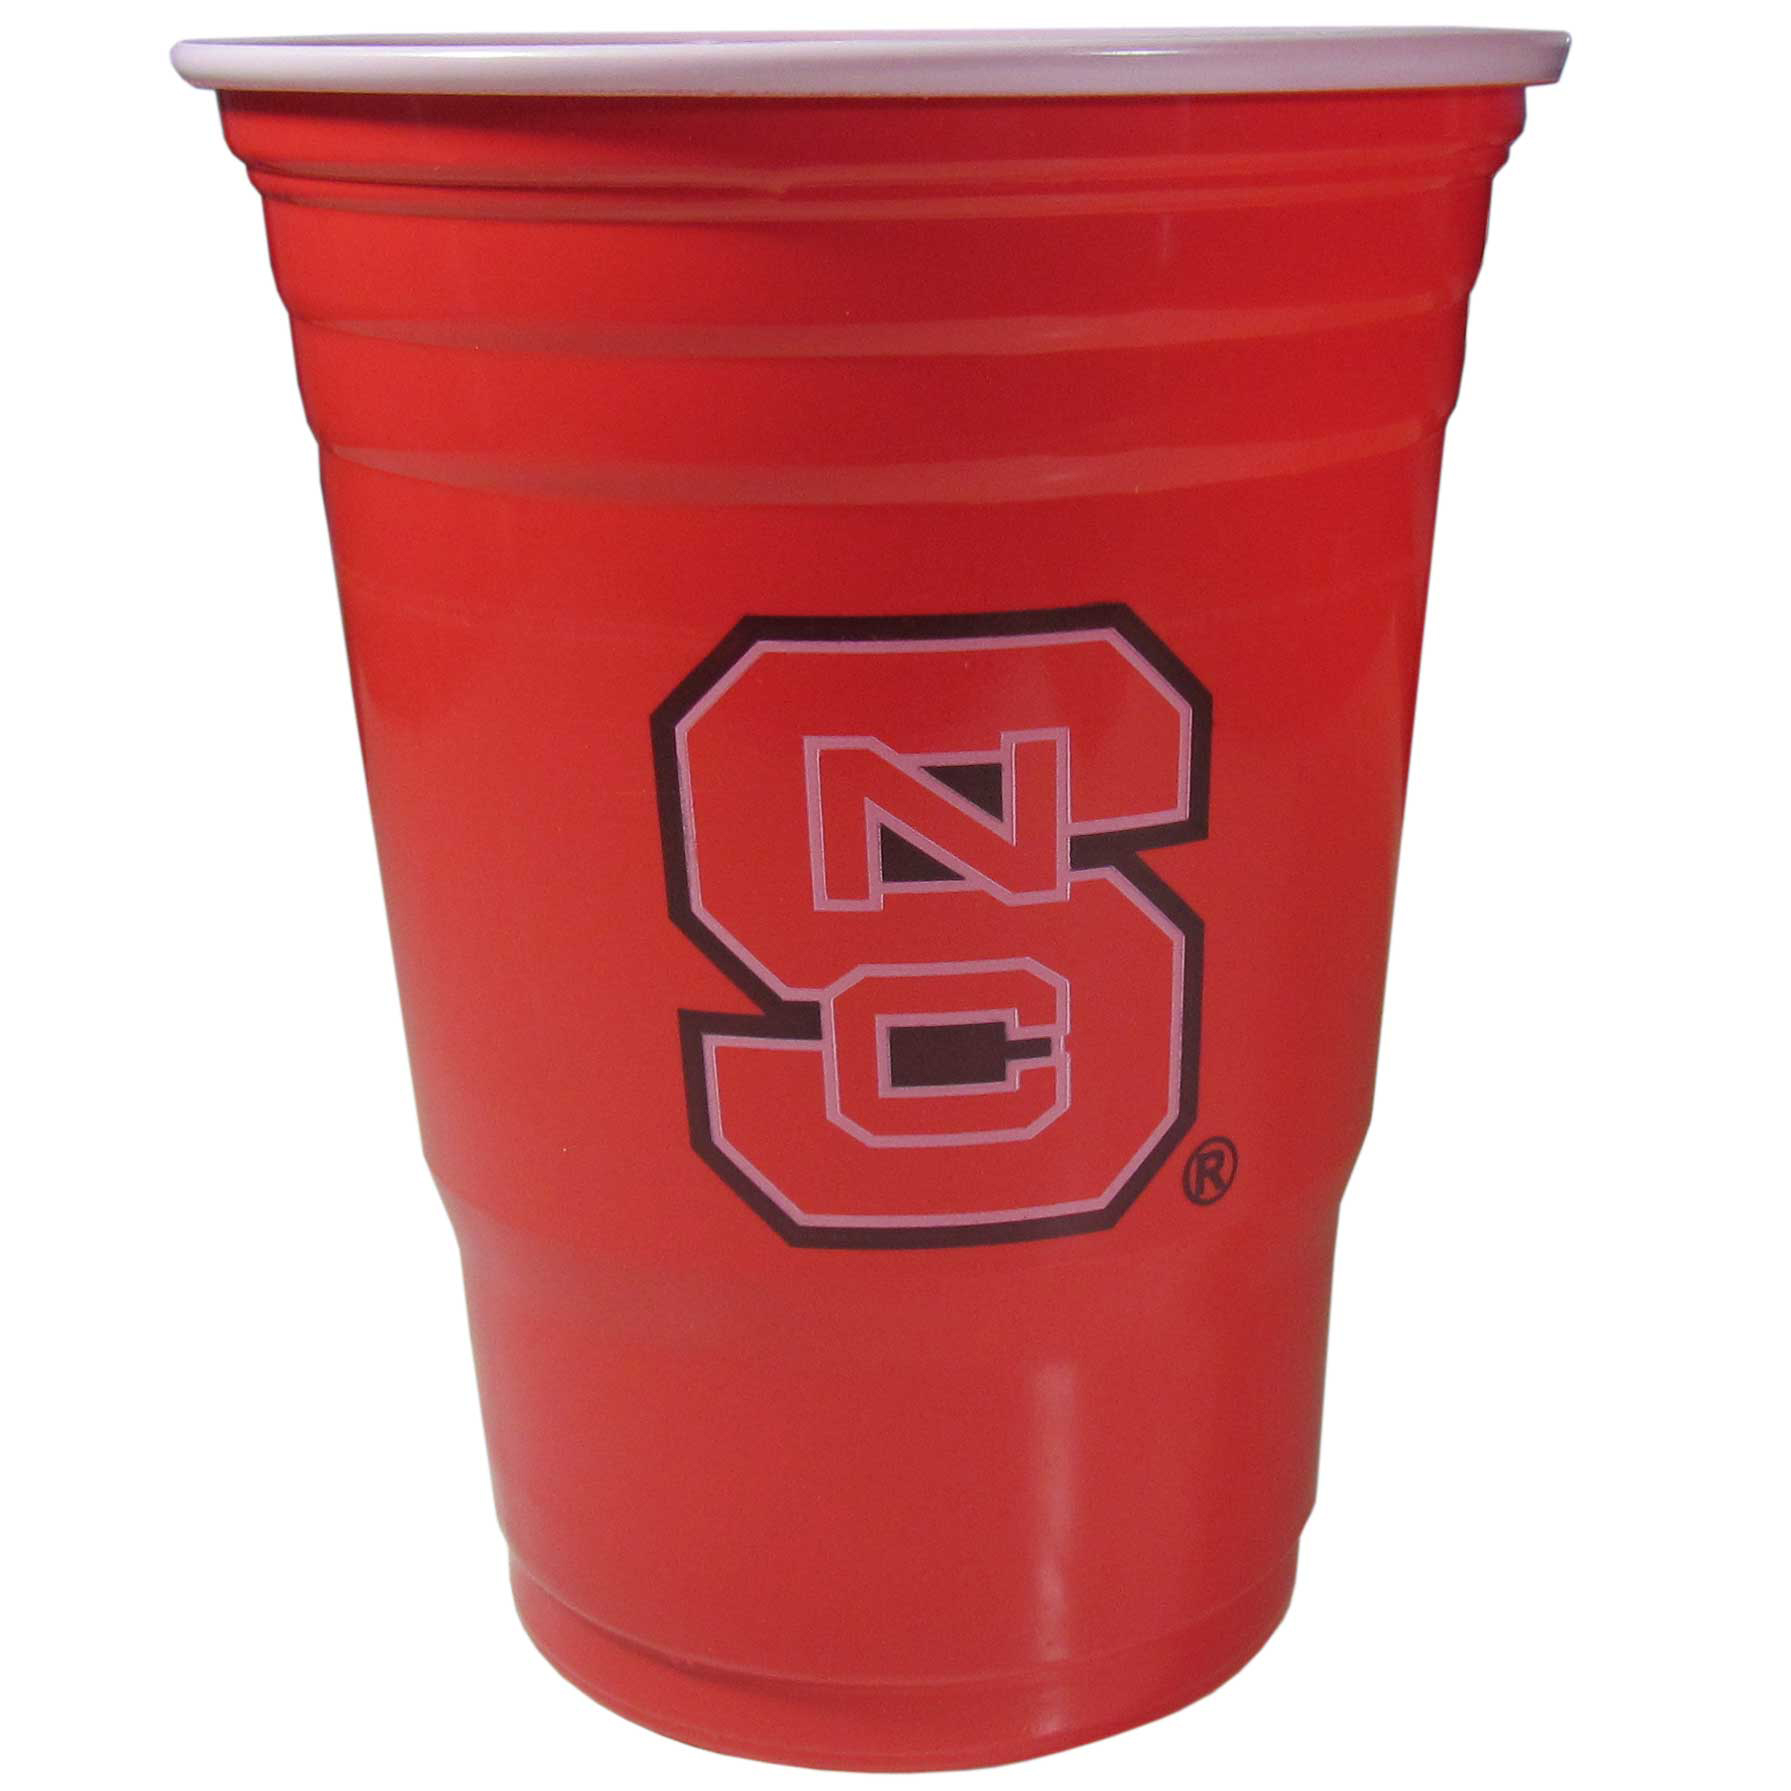 N. Carolina St. Wolfpack Plastic Game Day Cups 2 sleeves of 18 (36 Cups) - Our 18 ounce game day cups are what every tailgating or backyard events needs! The cups feature a big N. Carolina St. Wolfpack logo so you can show off your team pride. The popular 18 ounce size is perfect for drinks or ping pong balls! 2 sleeves of 18 cups, 36 cups in total.